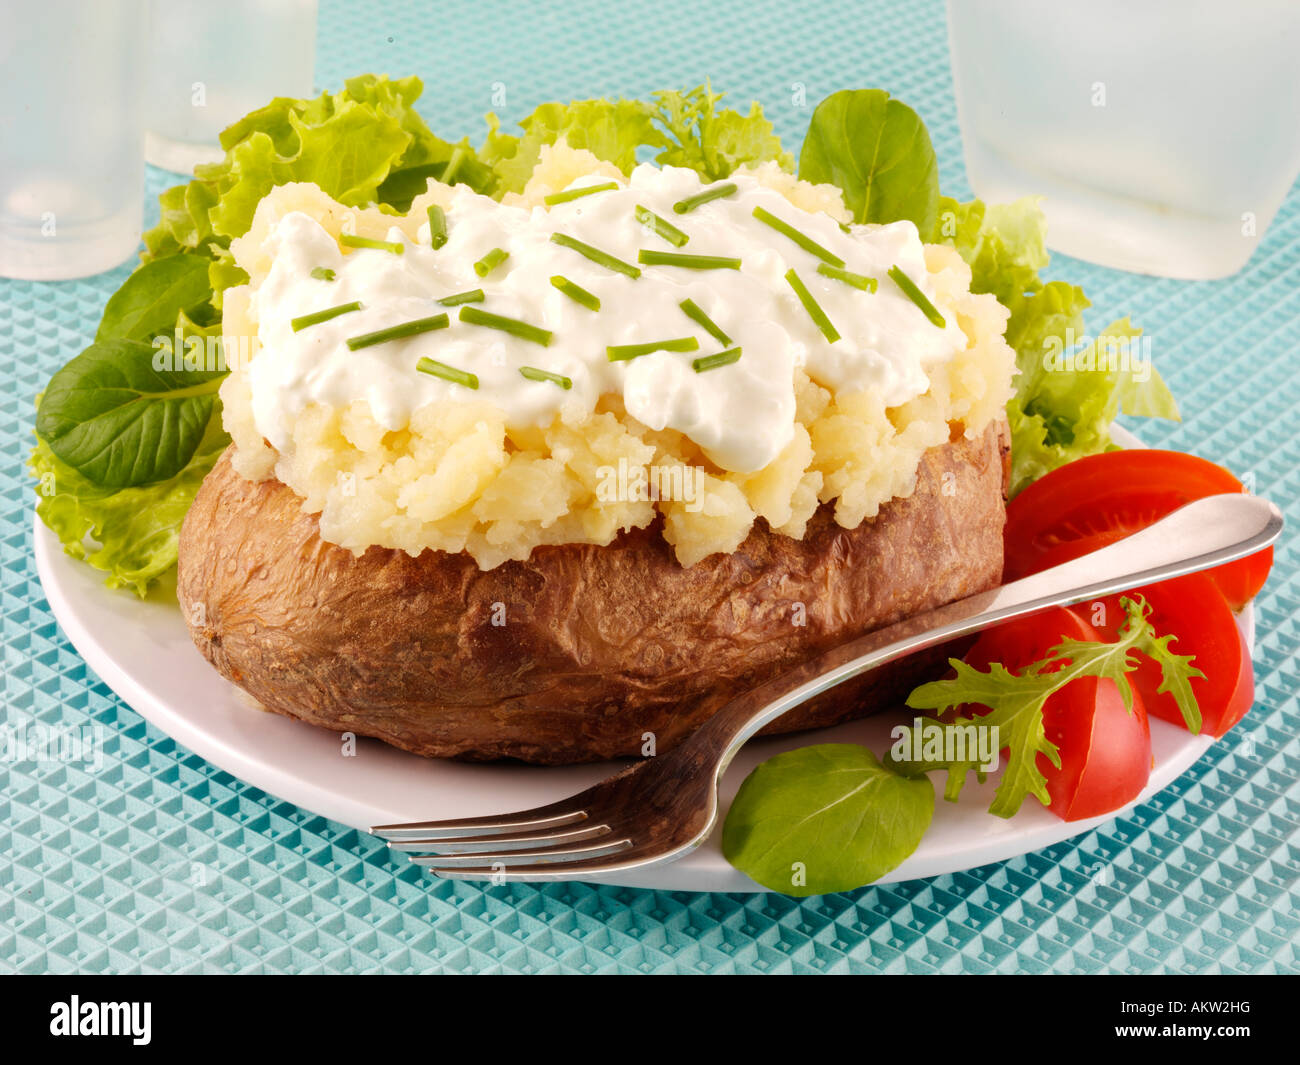 Phenomenal Baked Potato With Cottage Cheese And Chives Stock Photo Interior Design Ideas Gentotryabchikinfo